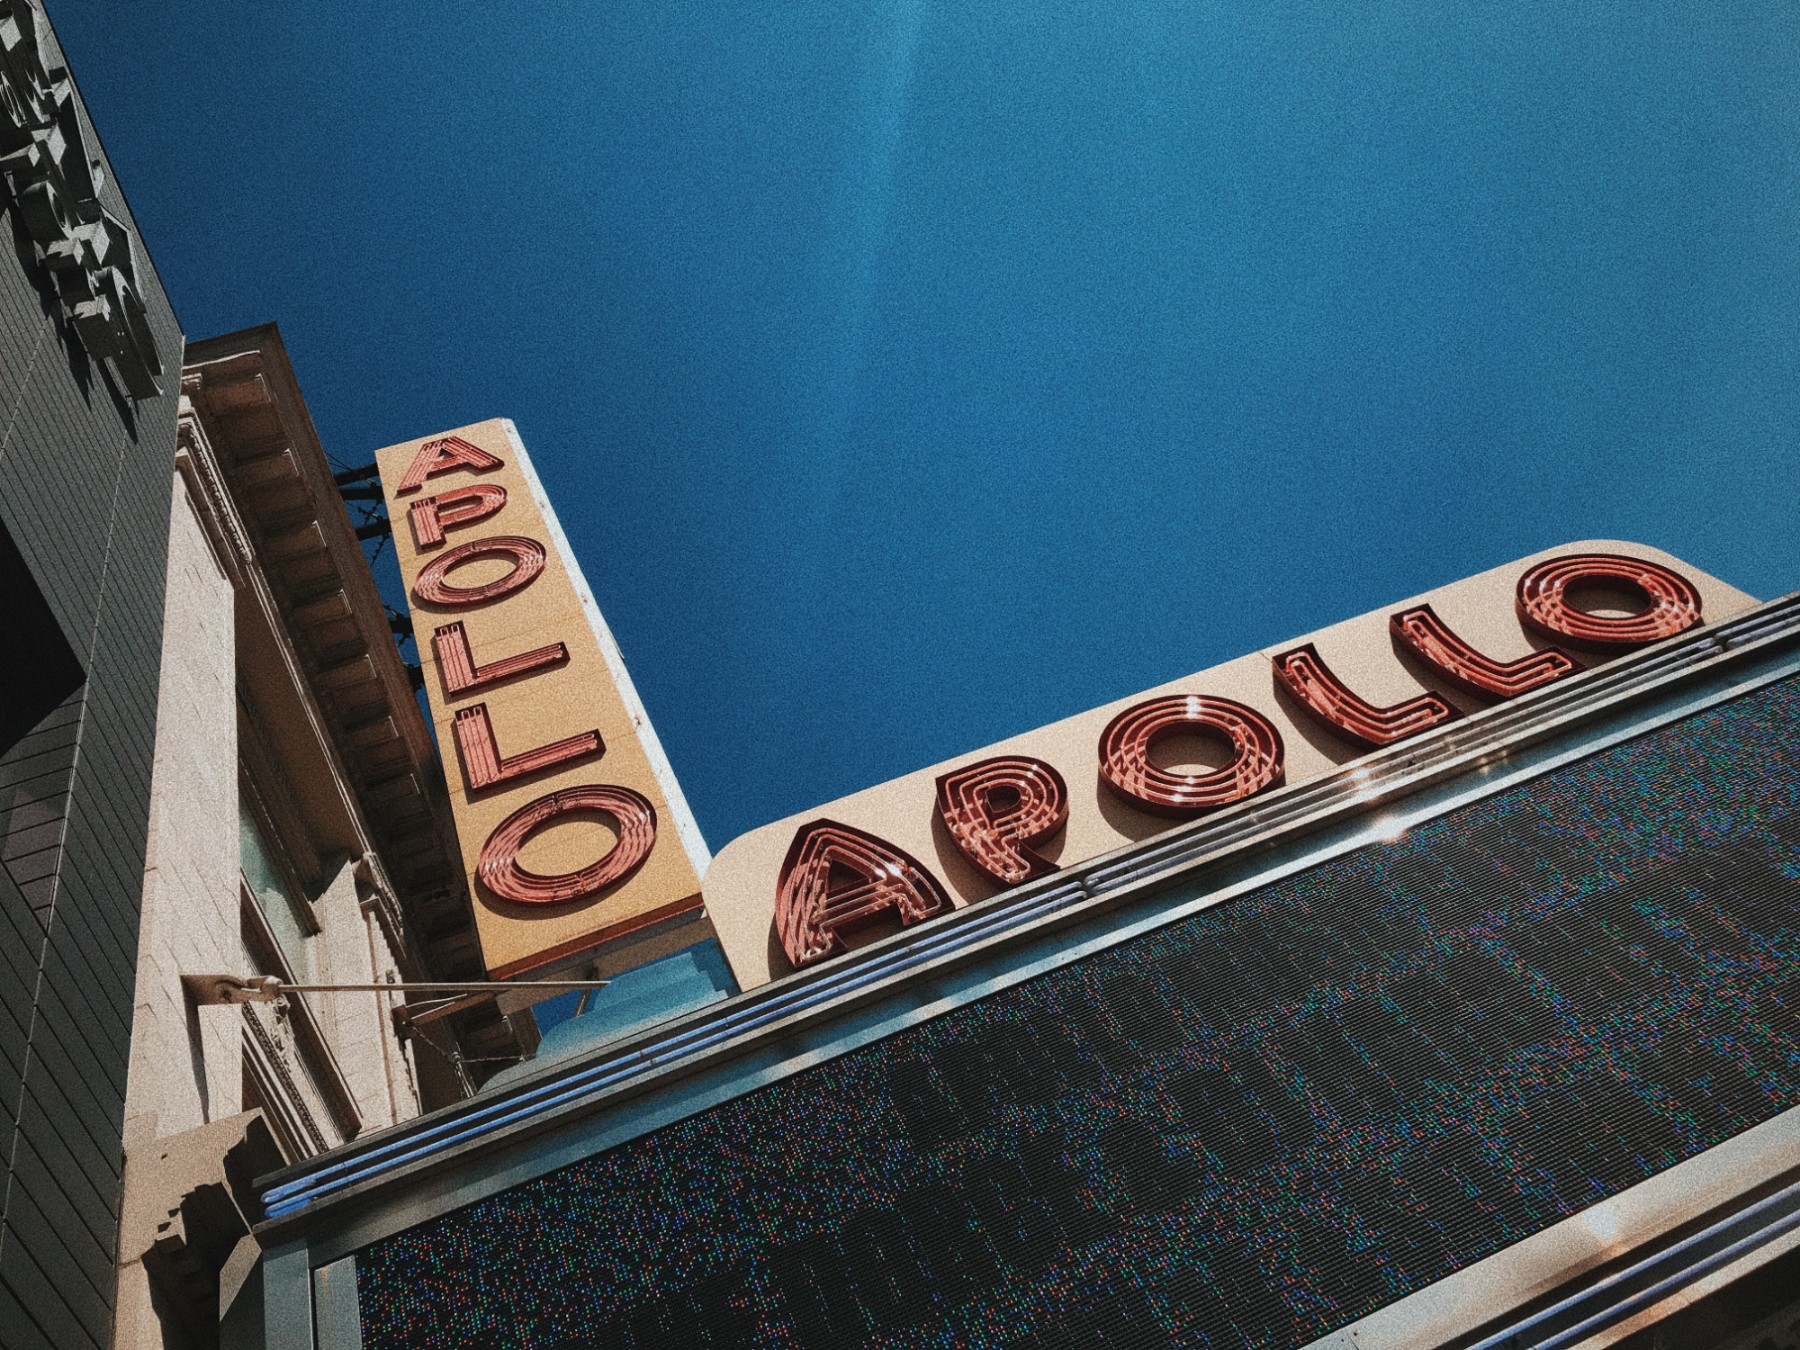 The Apollo Theater in Harlem